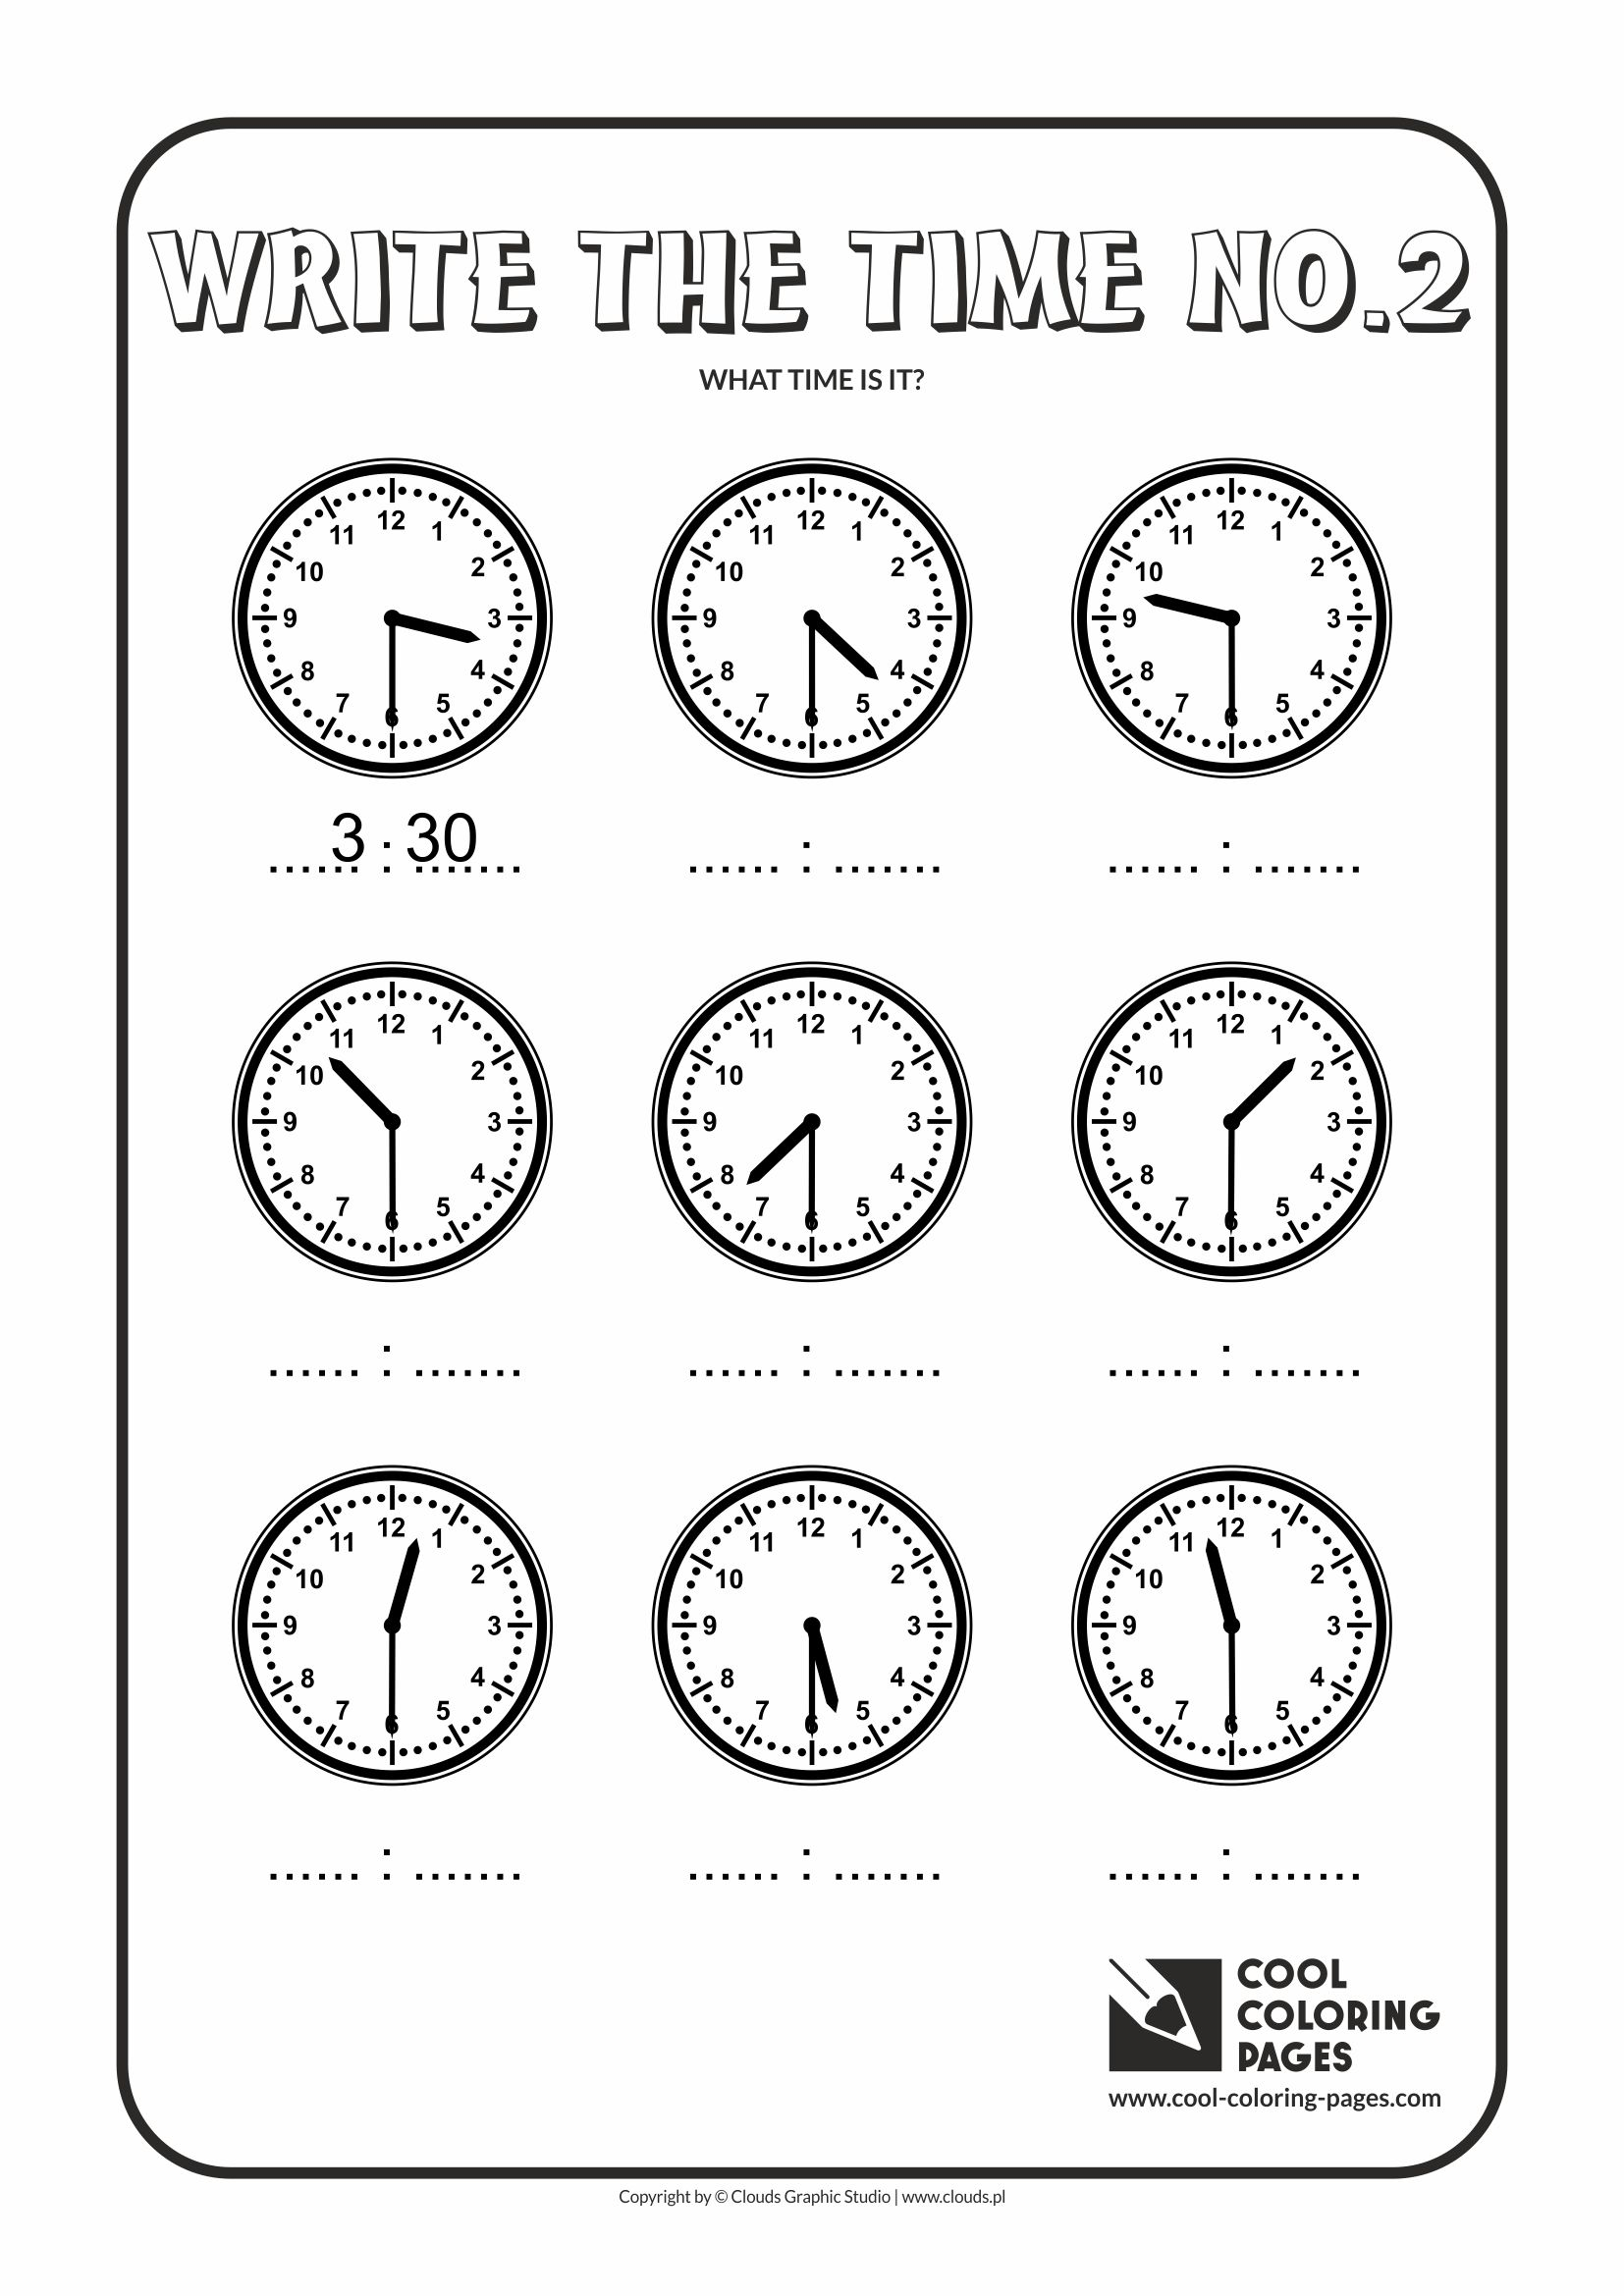 Cool Coloring Pages - Time / Write the time no.2